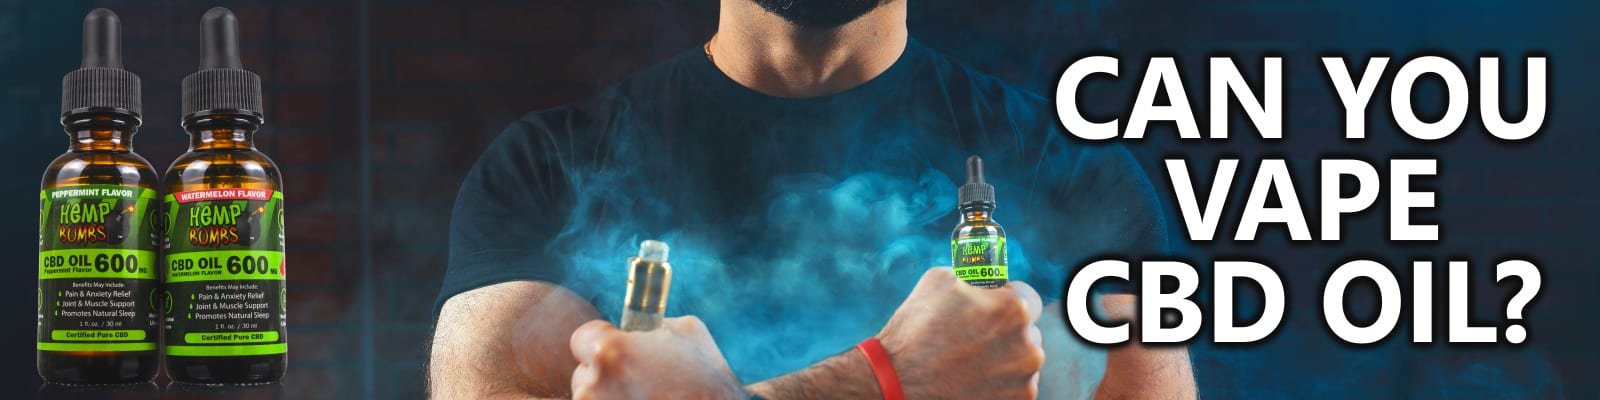 Can you vape CBD Oil Hemp Bombs 600mg Tincture with a man with arms crossed in an 'x' with vape in one hand and Hemp Bombs CBD Oil in the other